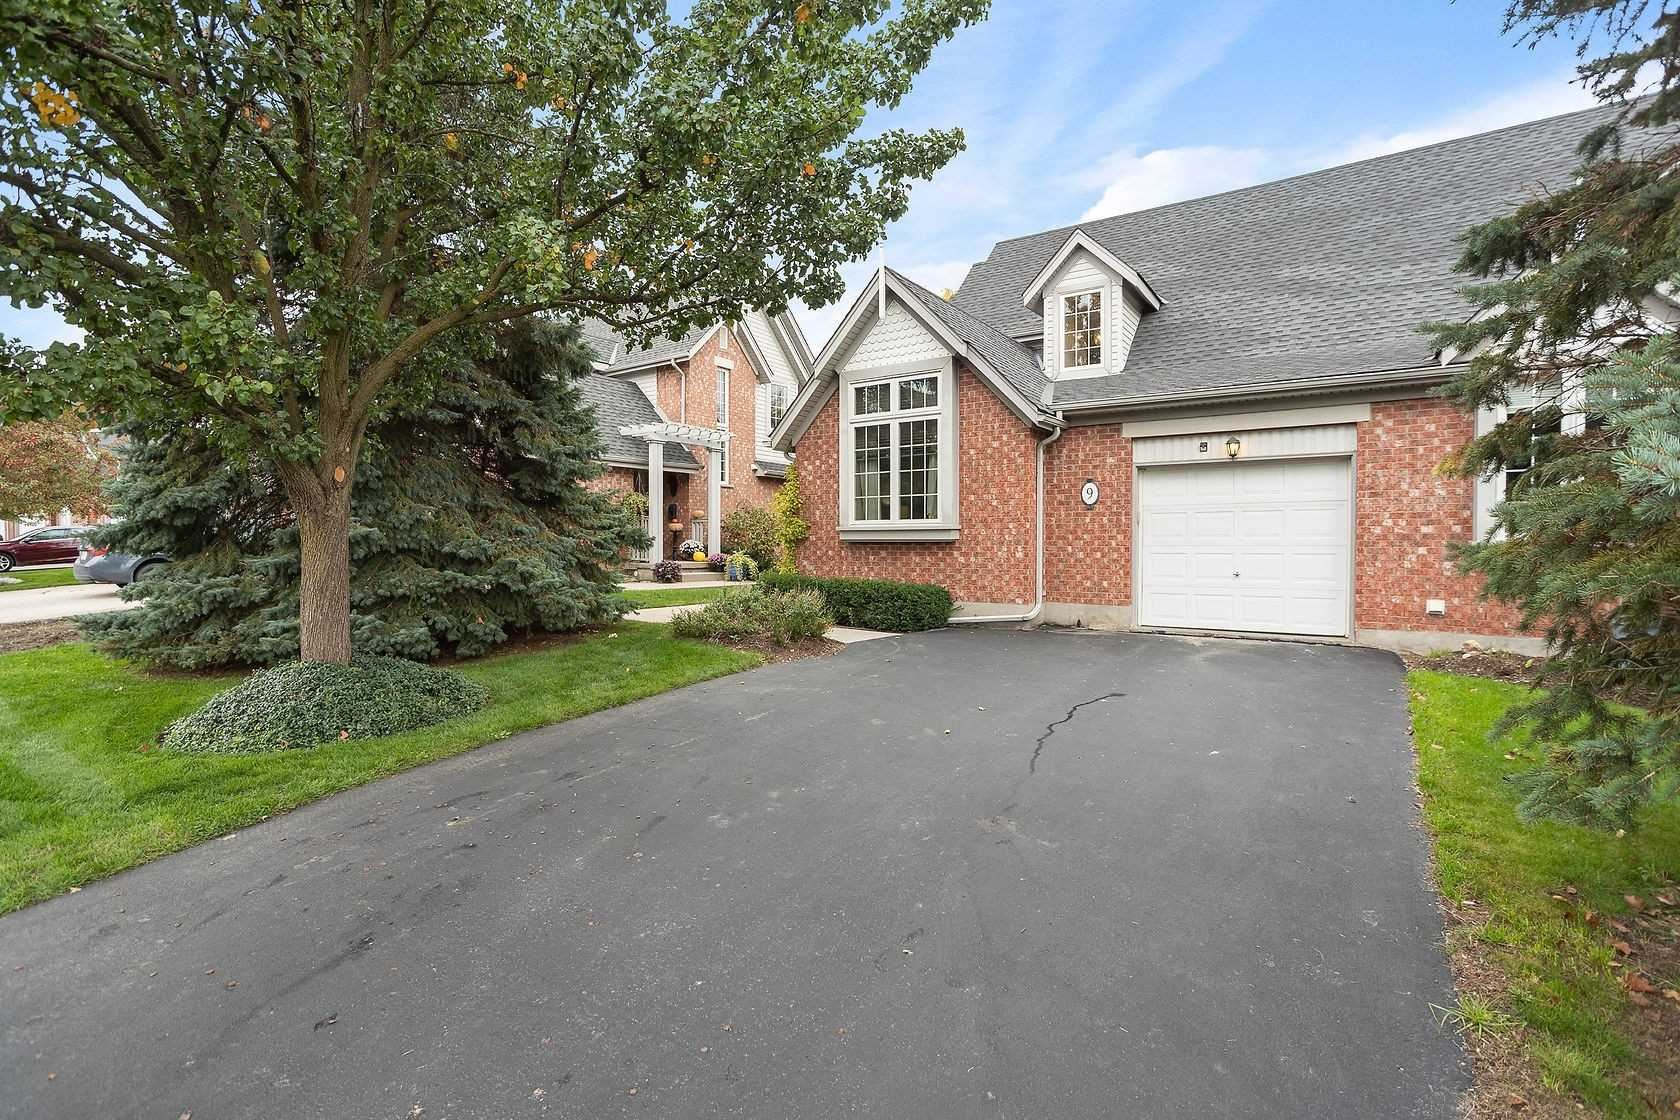 9 Westwind Circ, Guelph, ON N1G 4Z4 - MLS#: X5408209